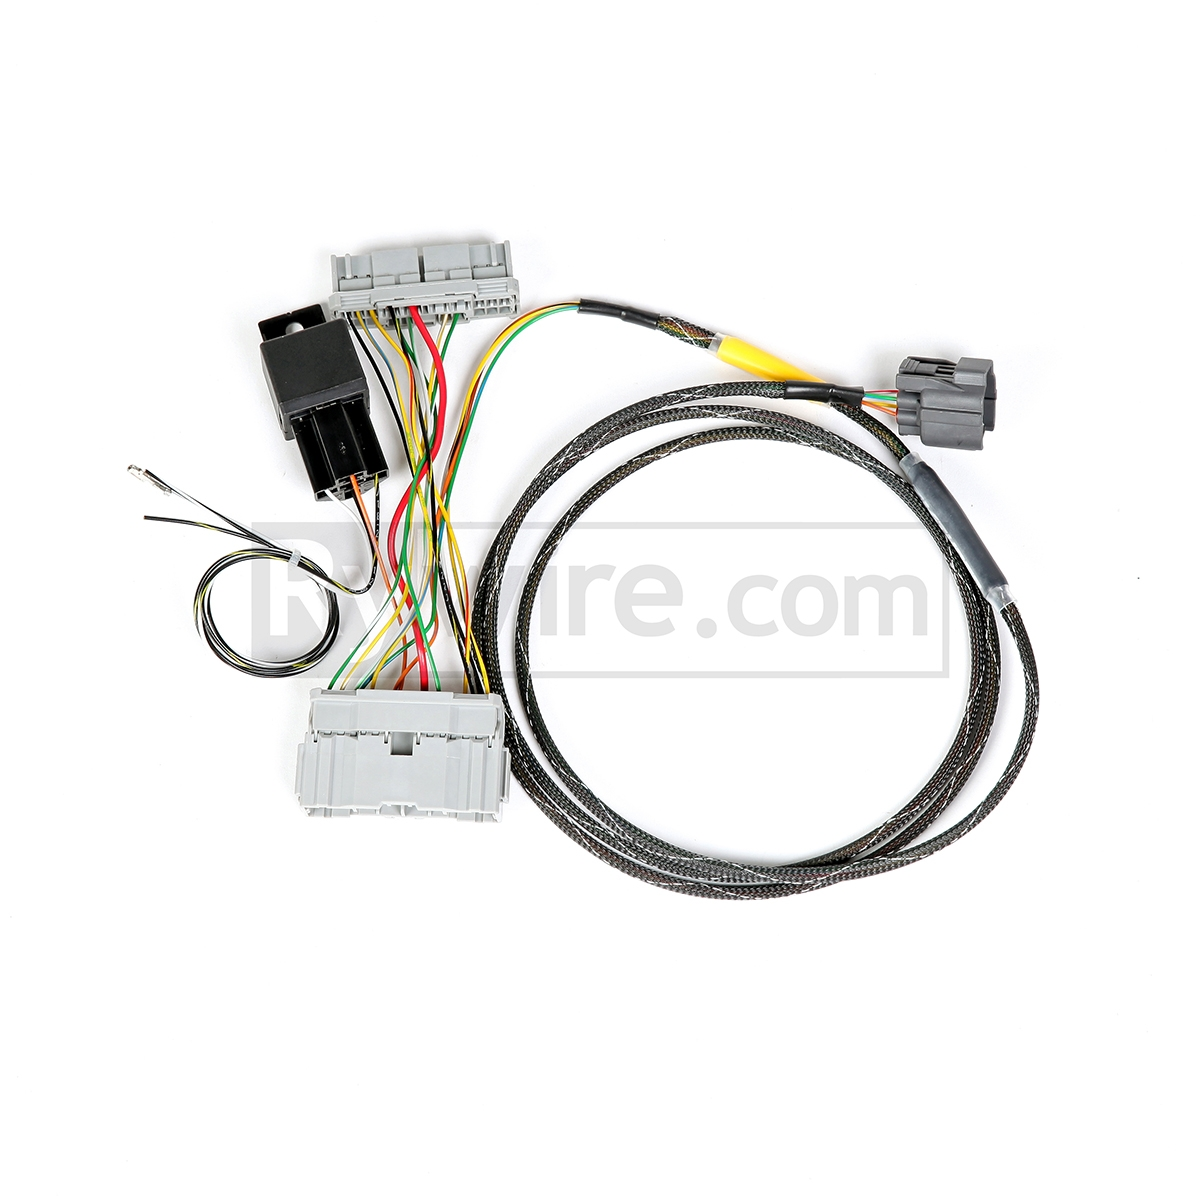 hight resolution of rywire k series chassis adapter 1995 acura integra wiring harness 94 integra engine harness diagram